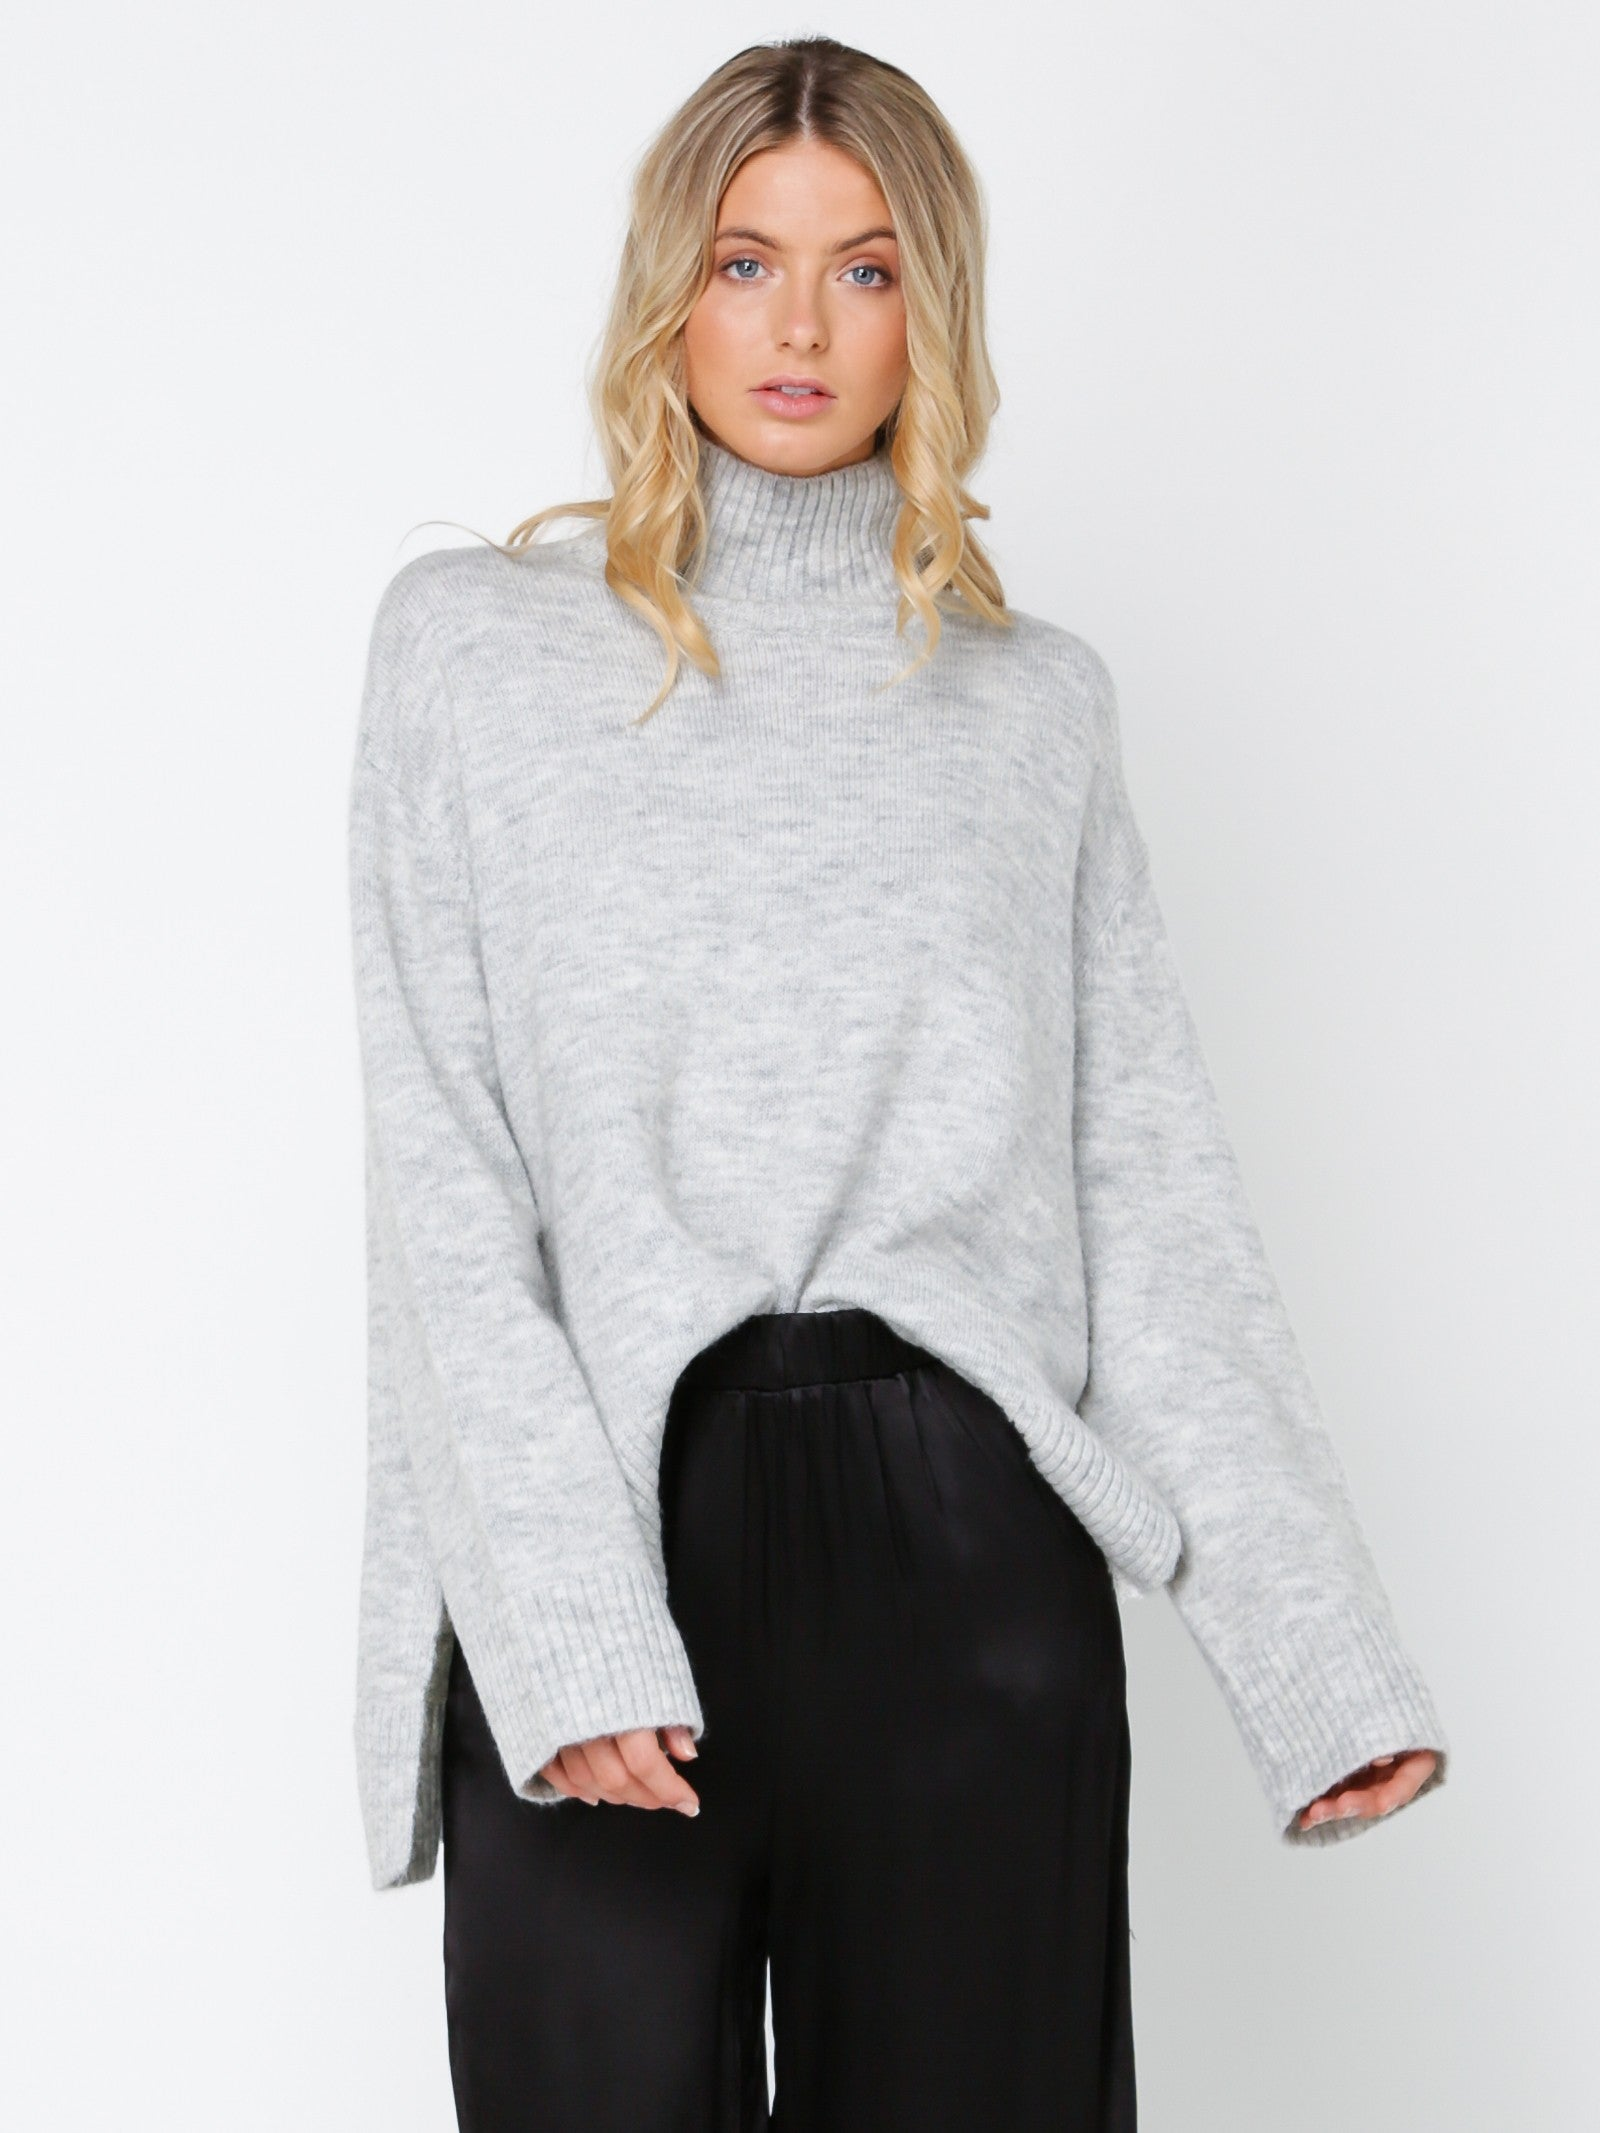 LULU + ROSE - Pyper Turtleneck Knit Top